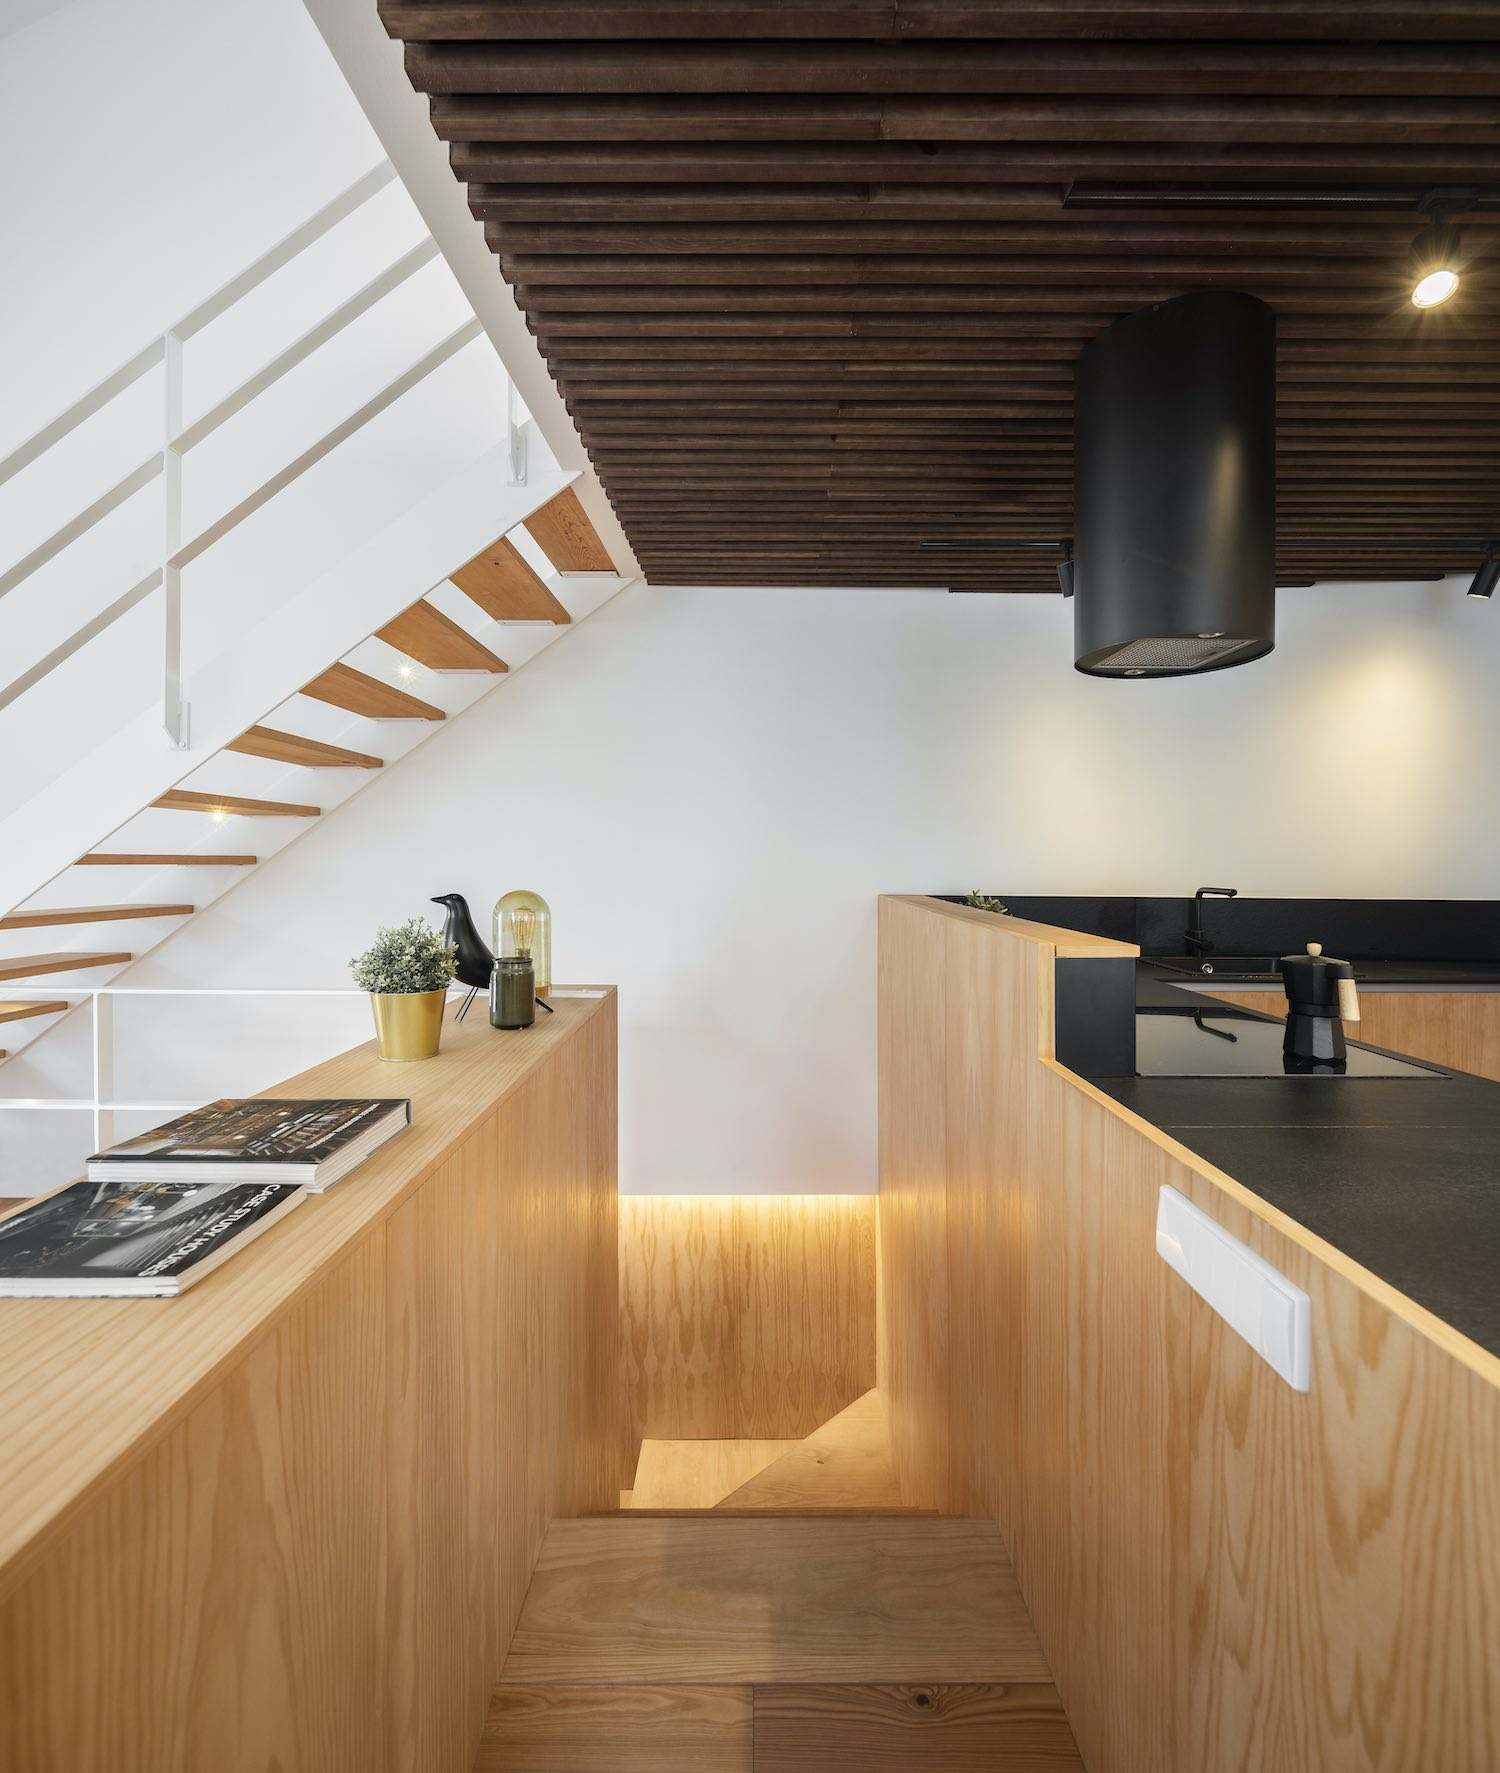 kitchen located near staircase